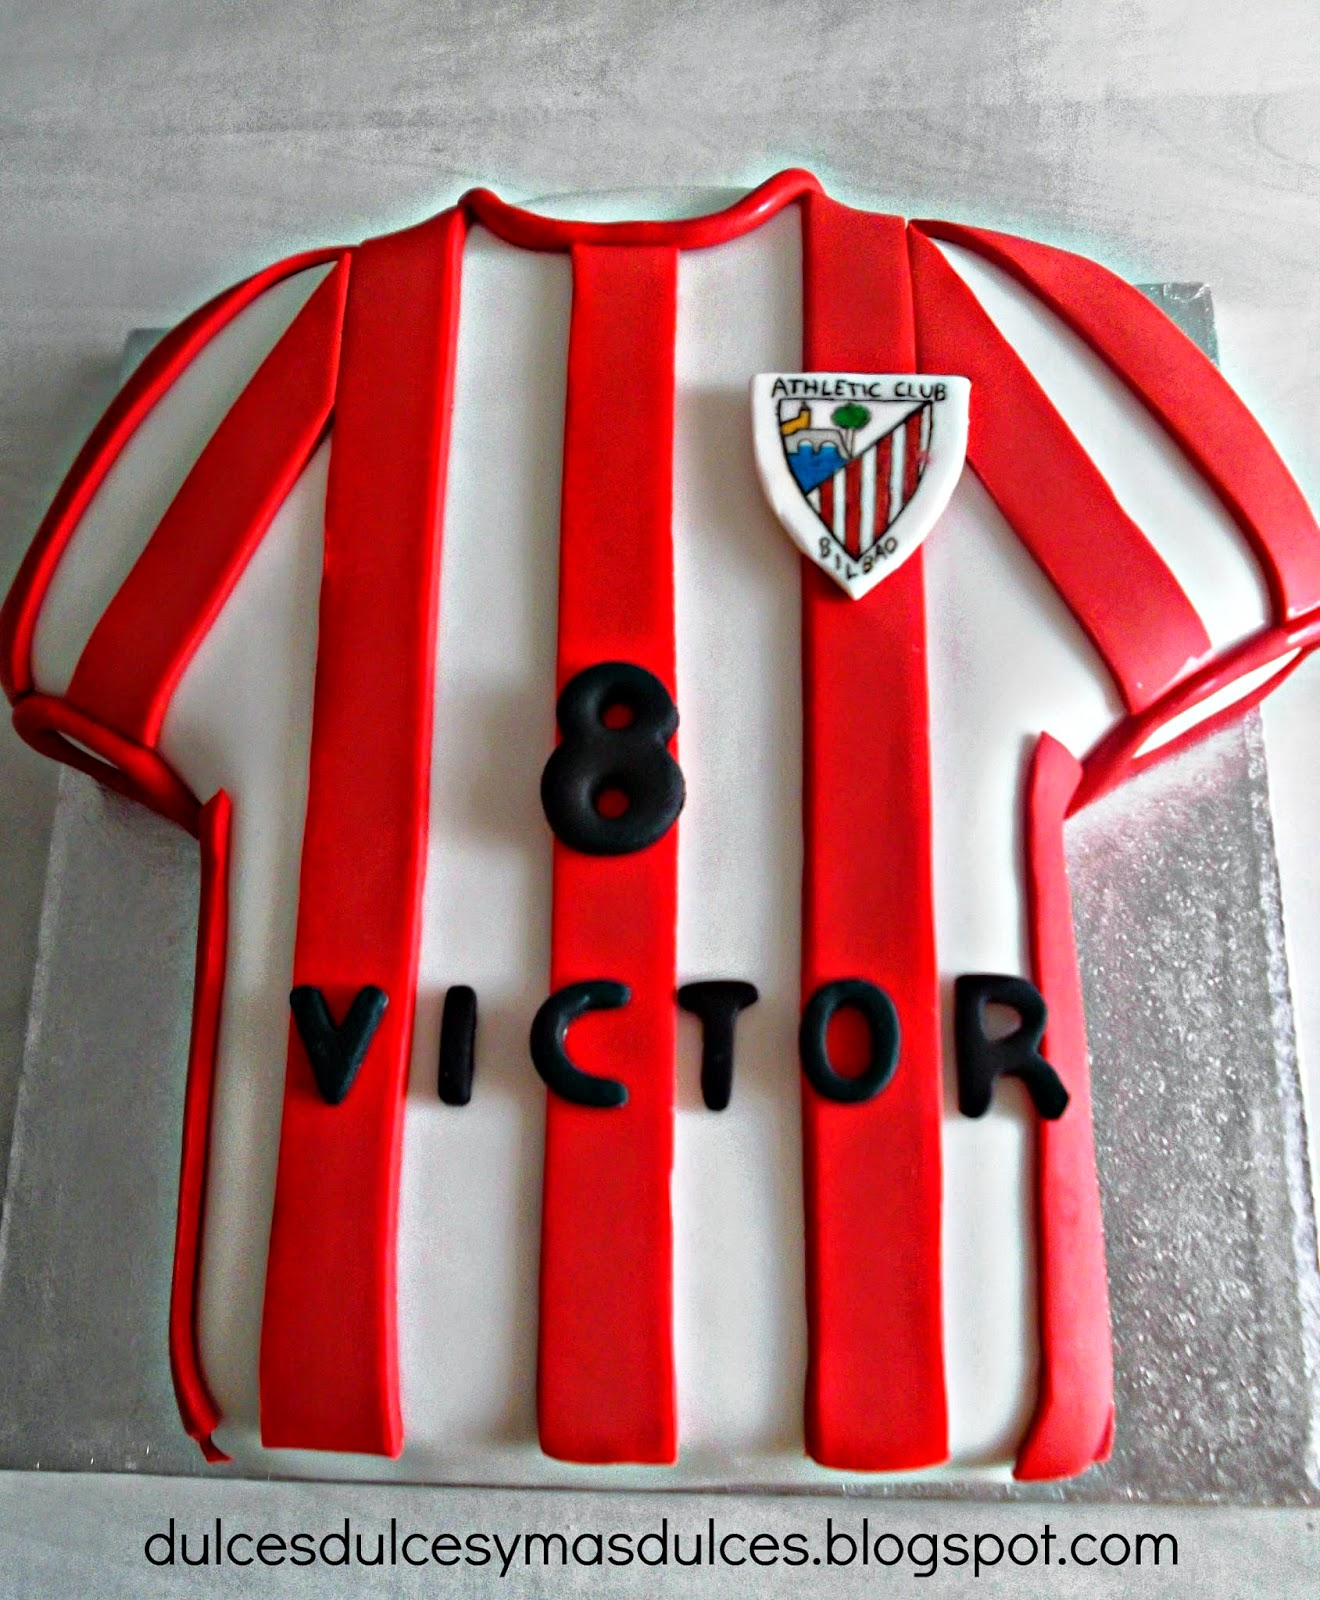 TARTA CAMISETA DEL ATHLETIC d4a2da57f1a